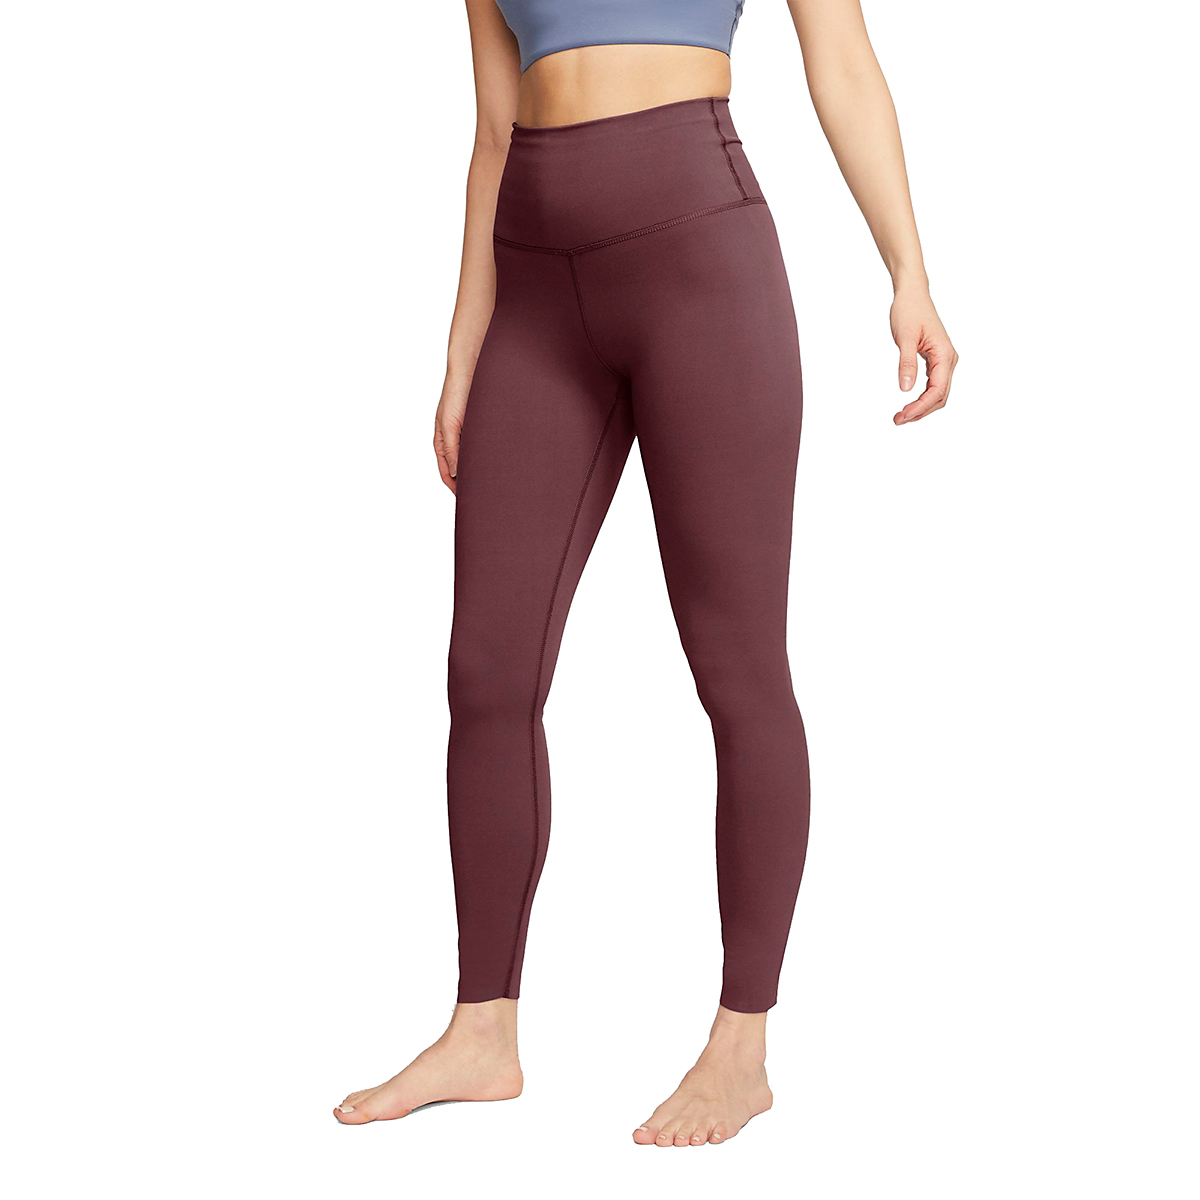 Women's Nike Luxe 7/8 Tights, , large, image 1